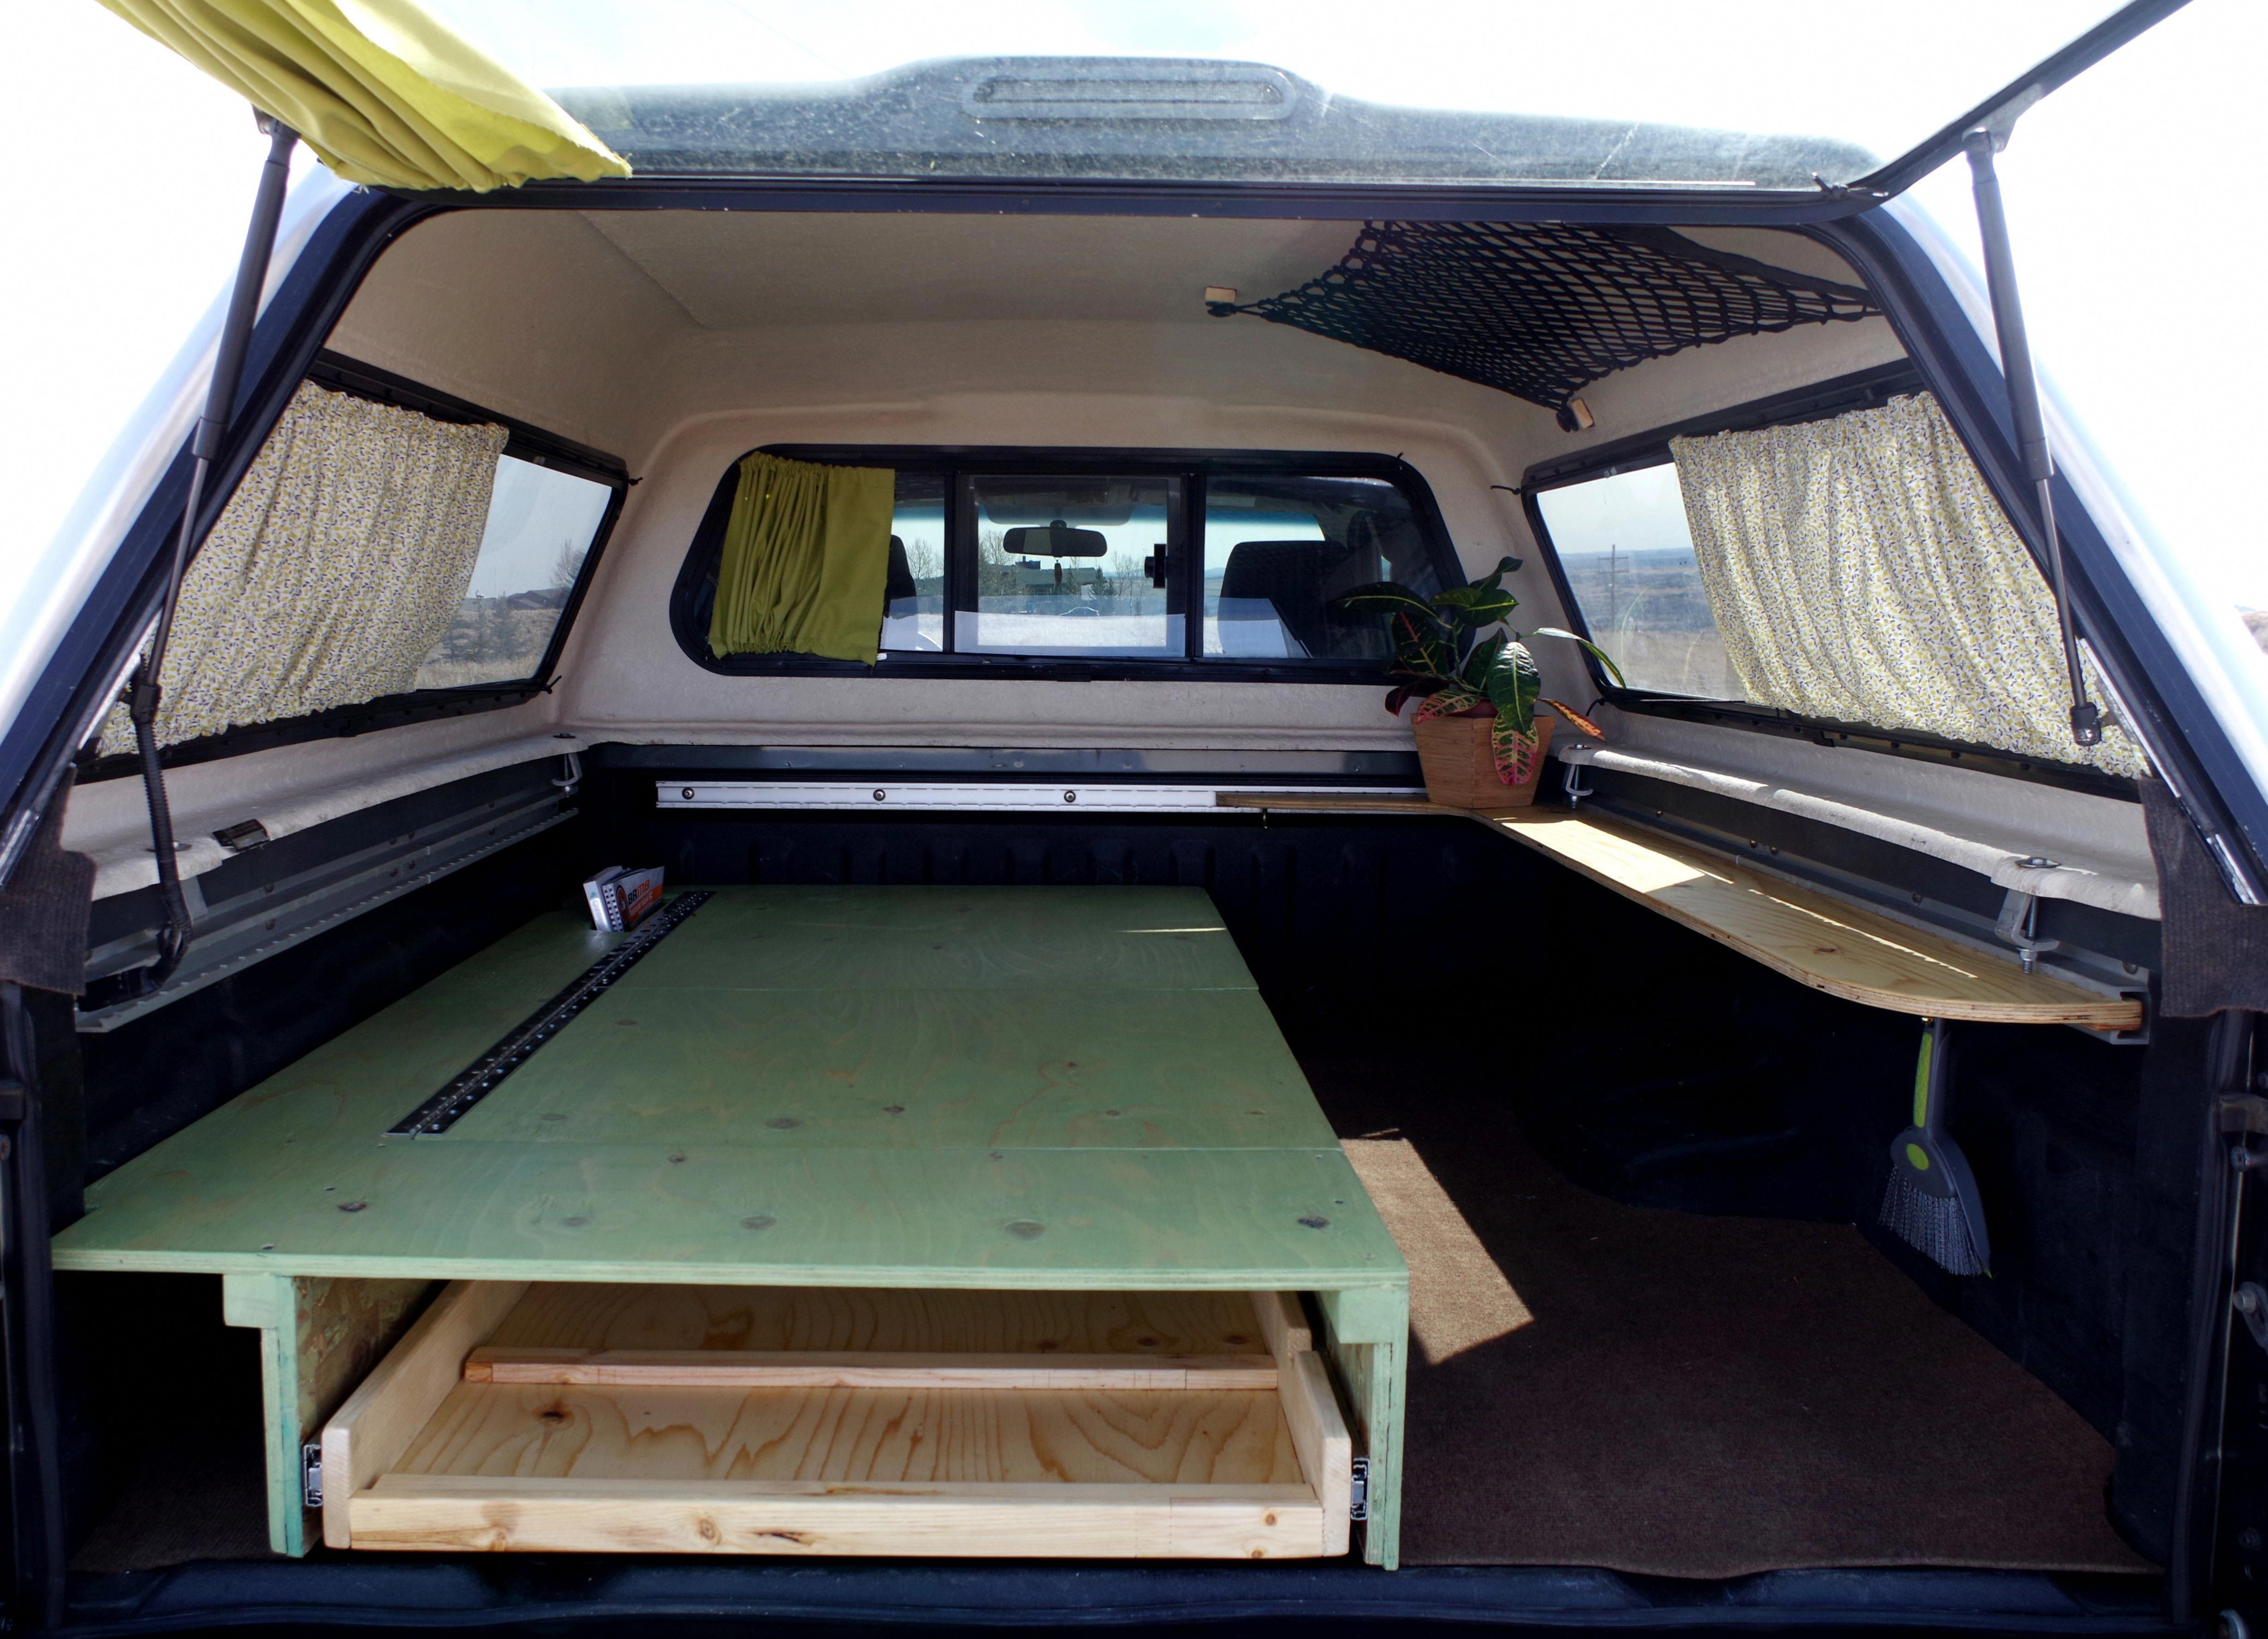 - Tiny Truck Camper Mini Home In Truck Bed Truck Canopy Camper